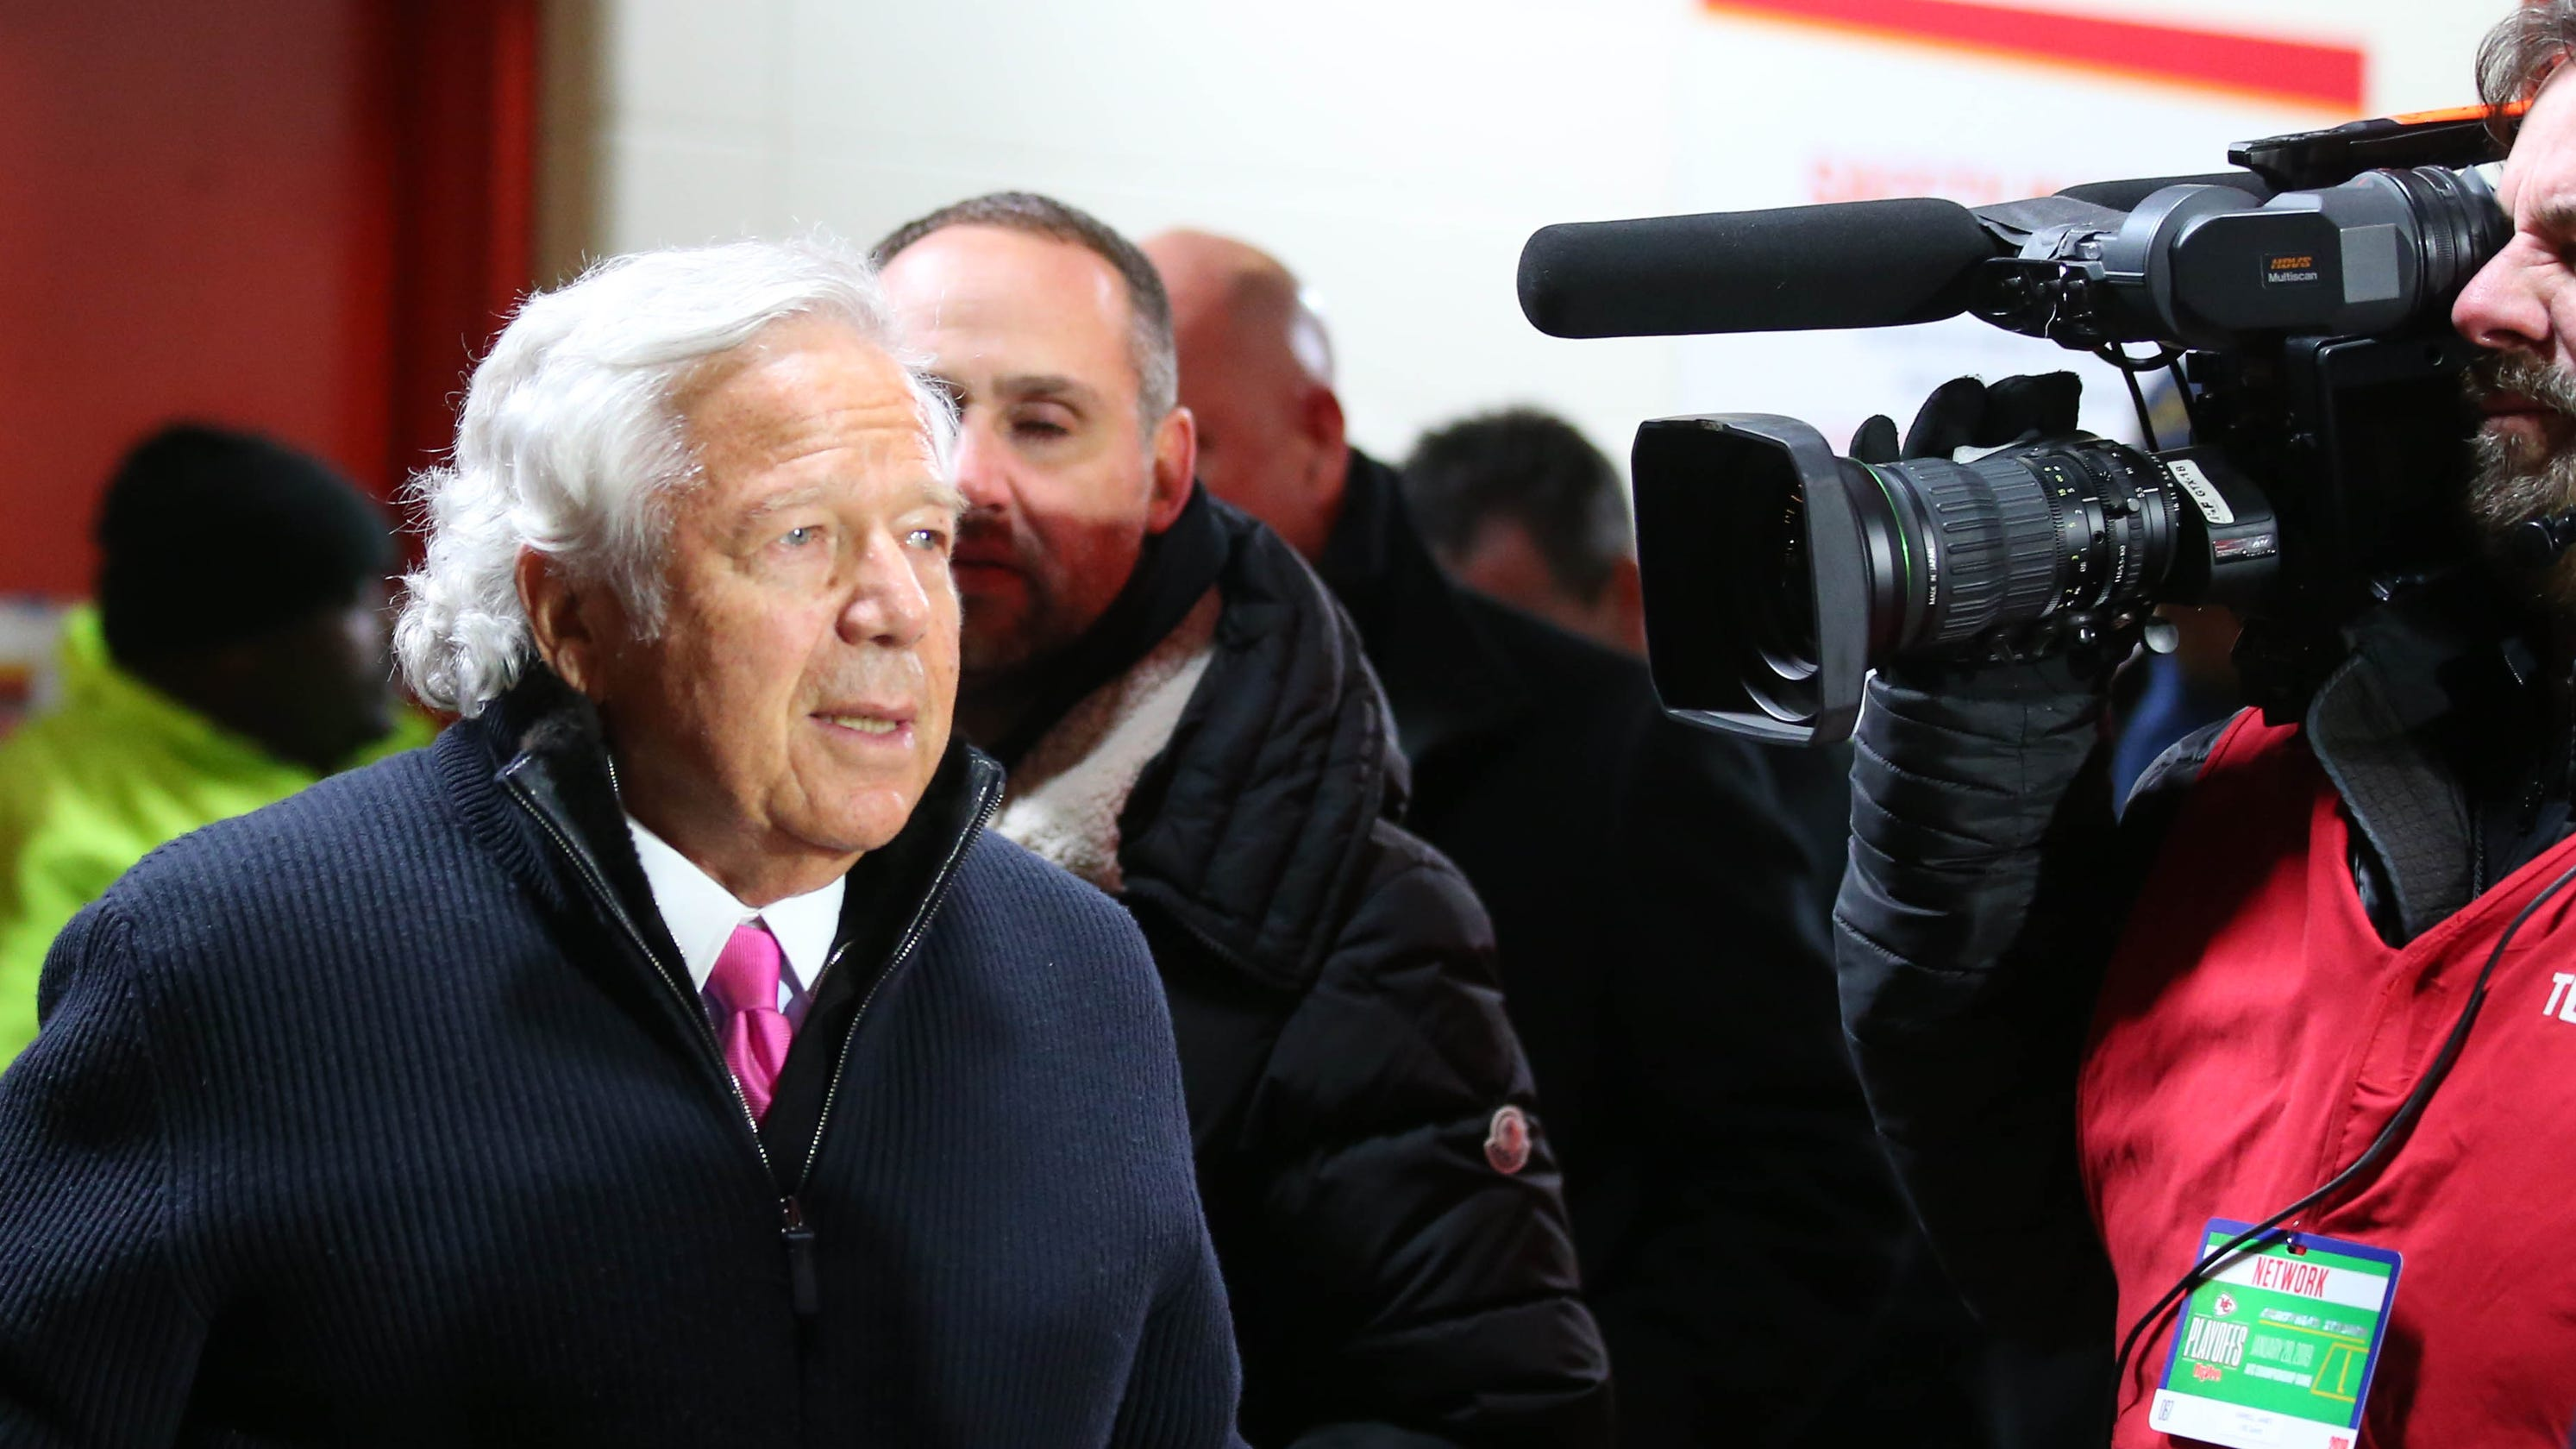 Robert Kraft: Defense claims search warrant illegally obtained